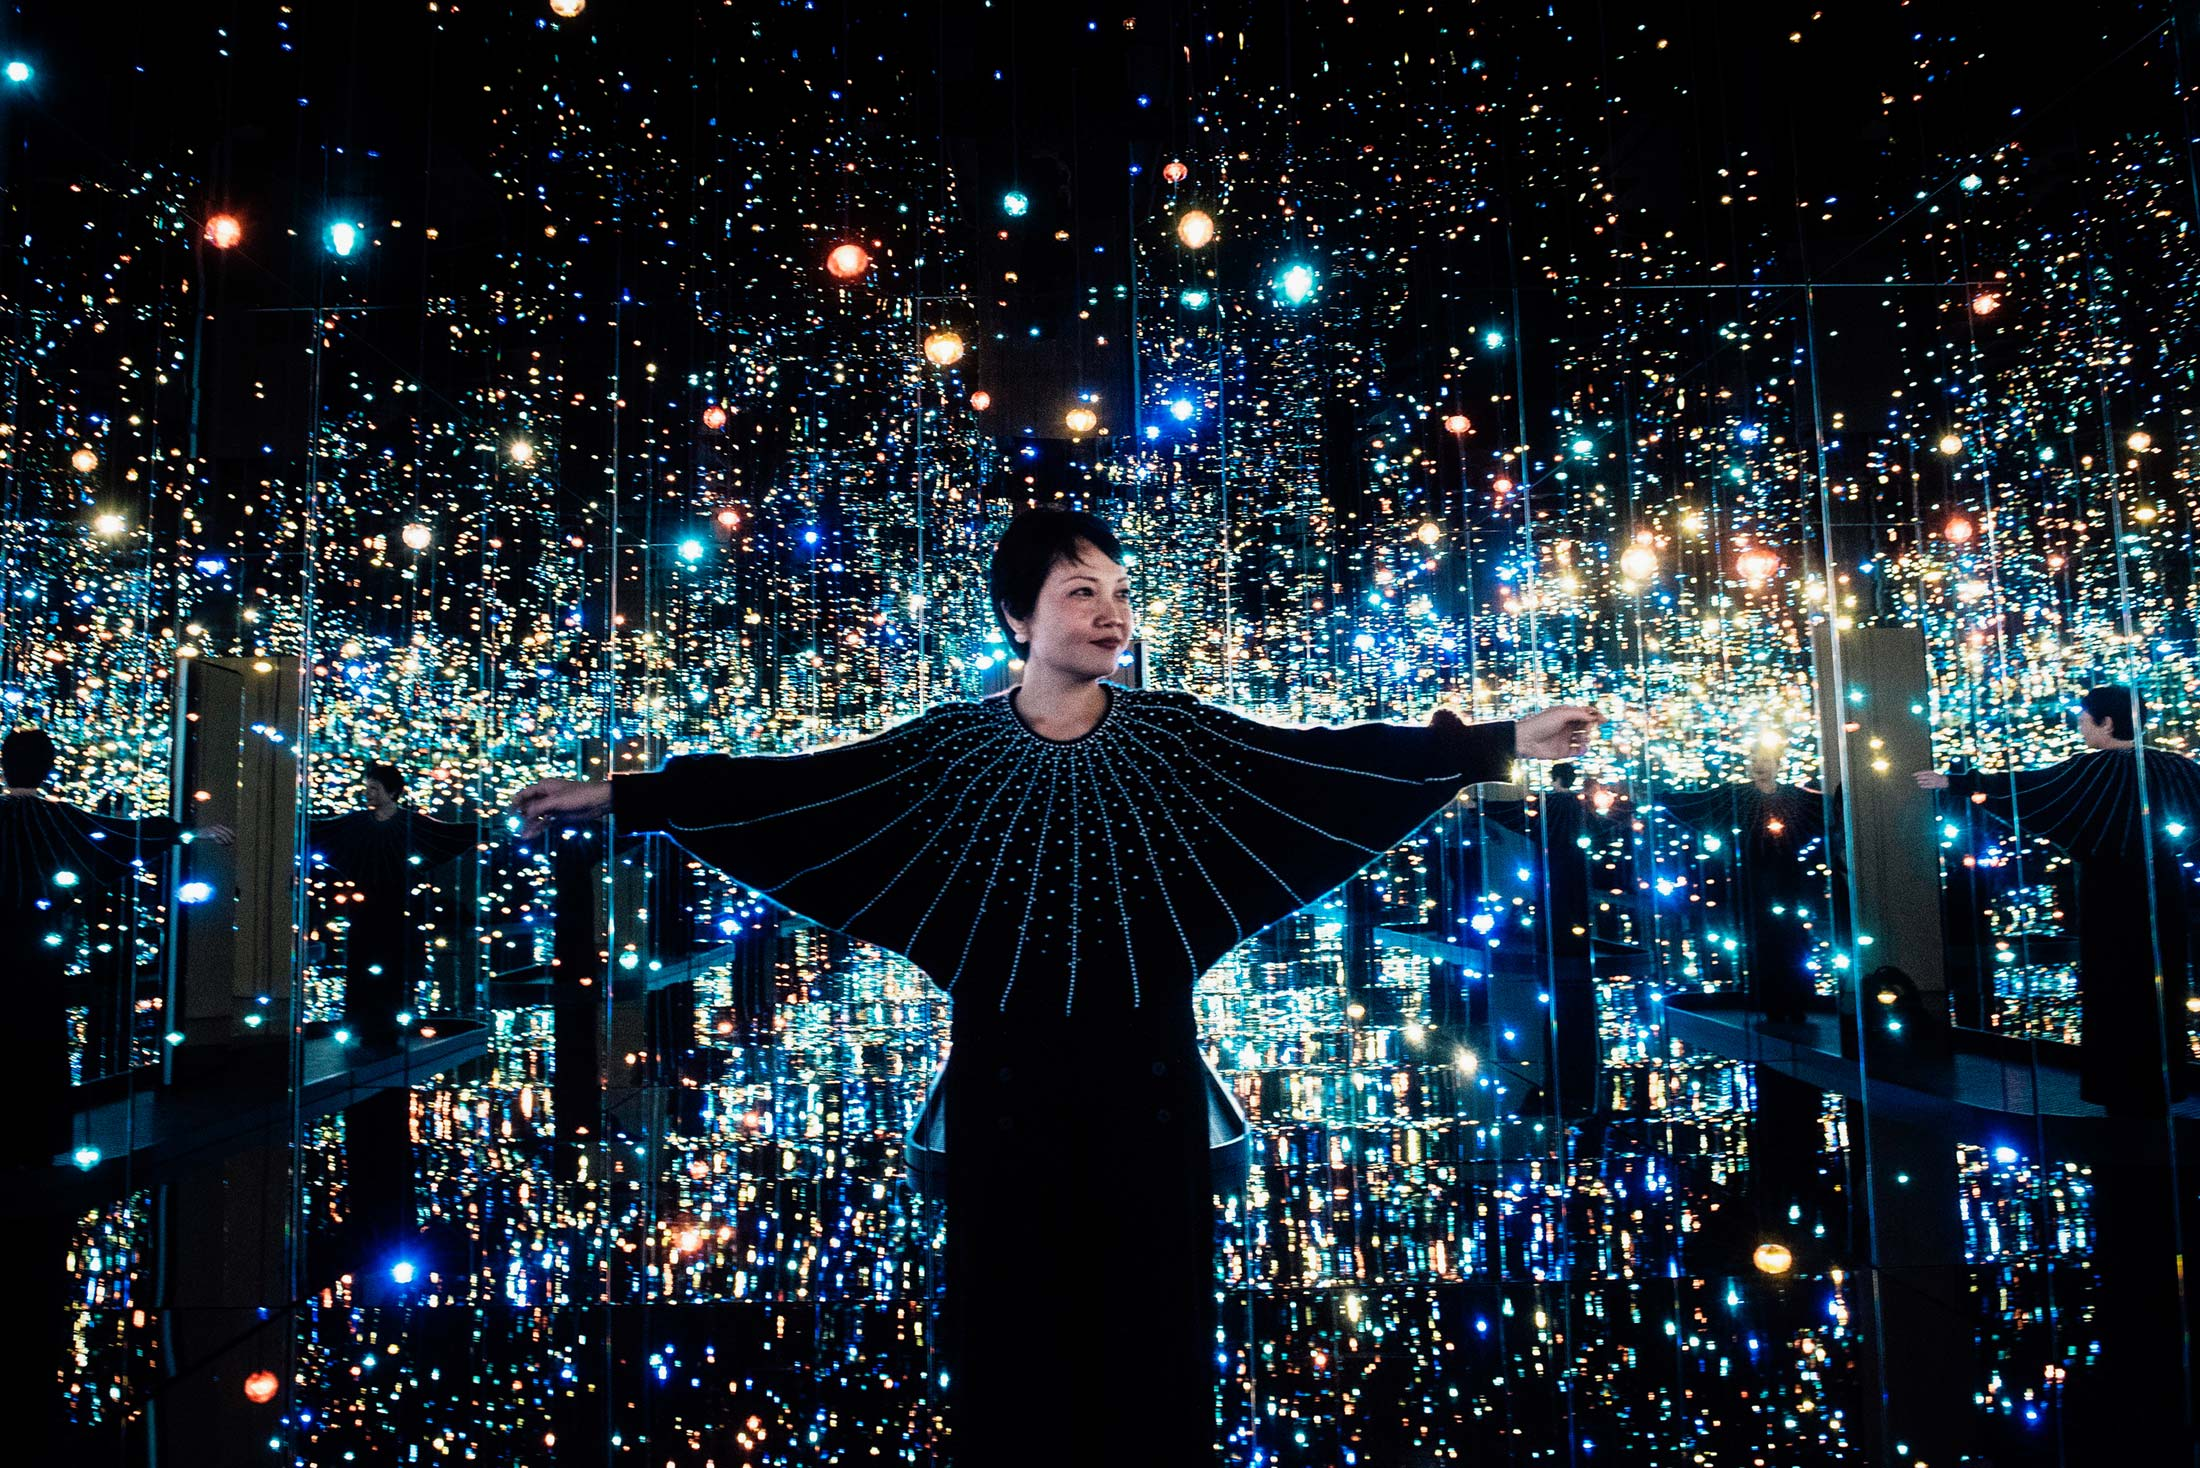 Yayoi Kusama's Infinity Mirrors exhibition curator Mika Yoshitake poses its the Souls of Millions of Light Years Away at the Hirshhorn Museum February 21, 2017 in Washington, DC.